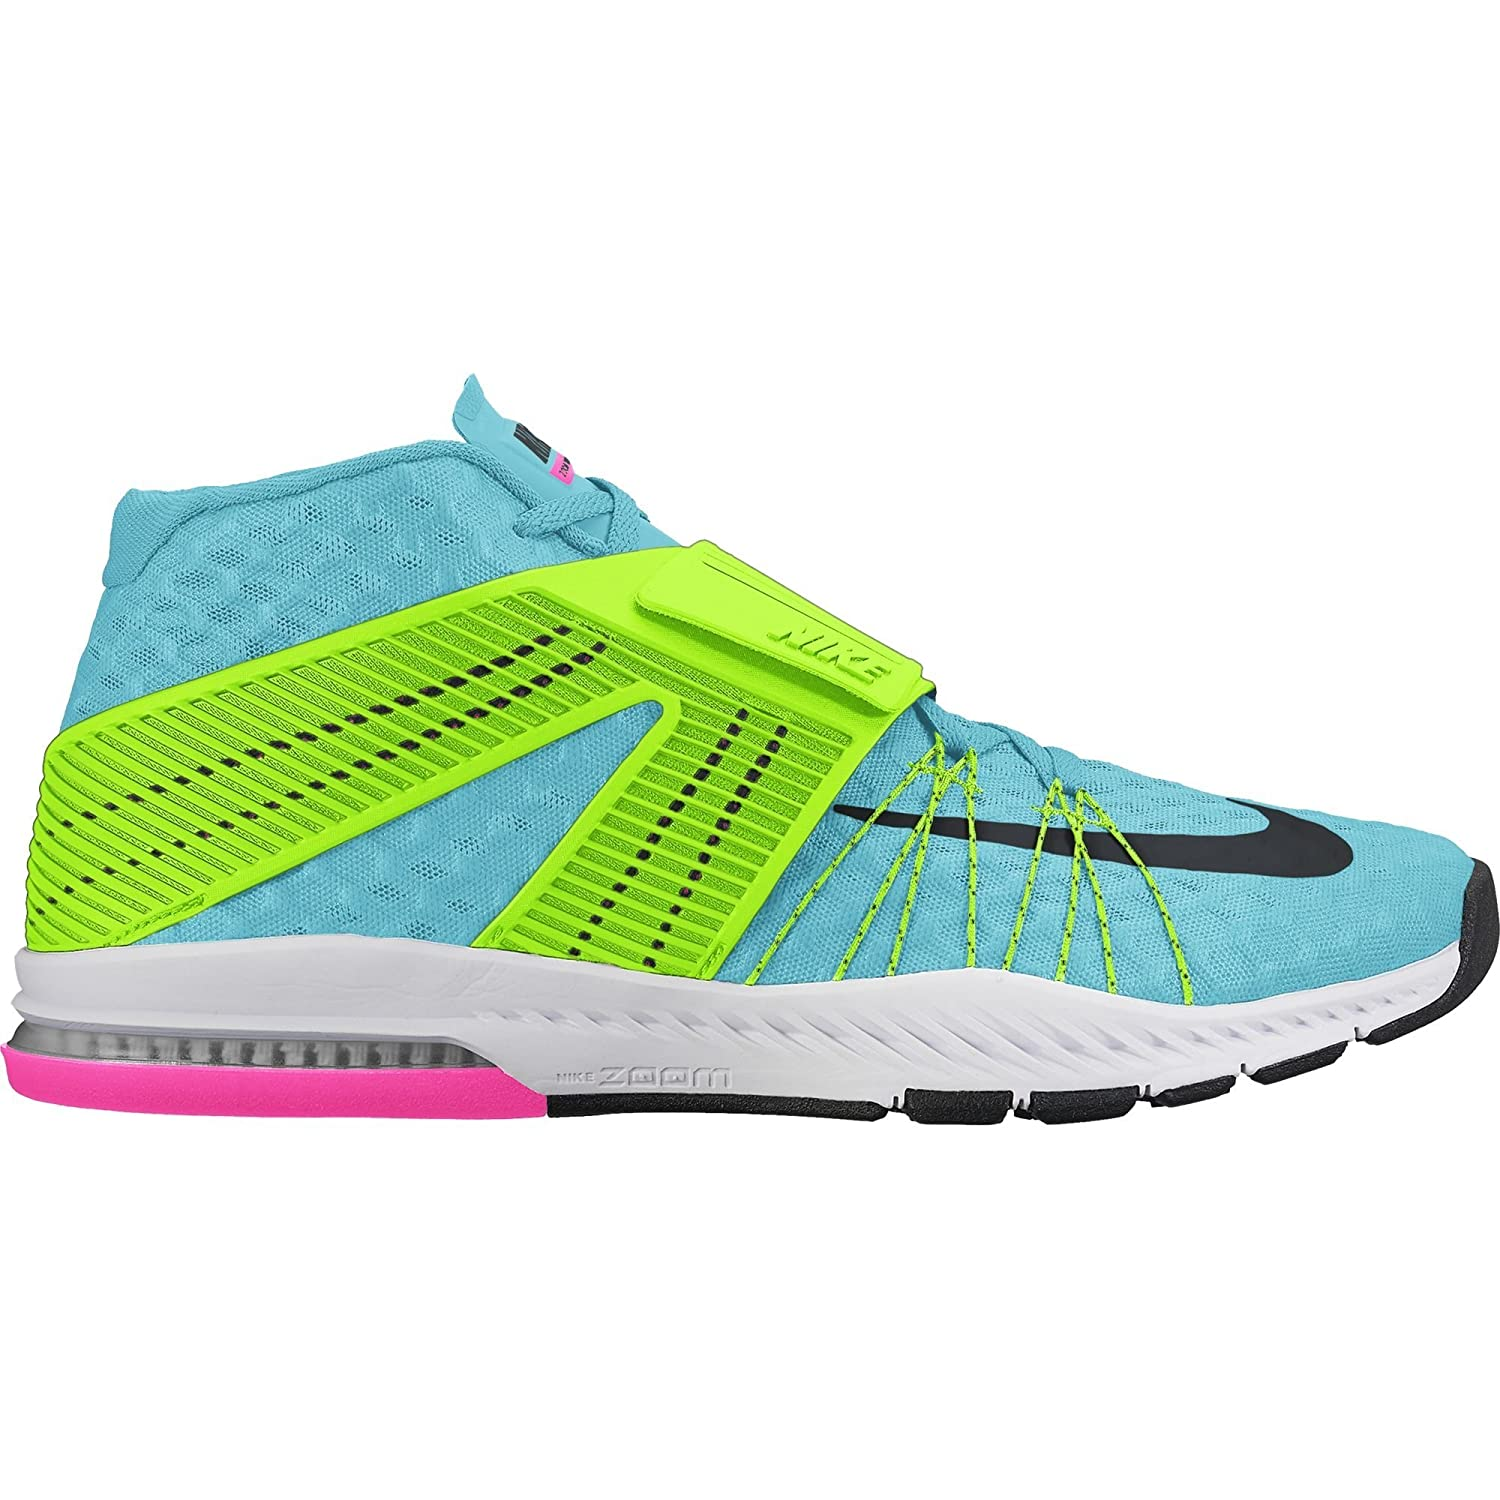 d46d45ba51960 Amazon.com | Nike Men's Zoom Train Toranada - Gamma Blue/ Electric ...